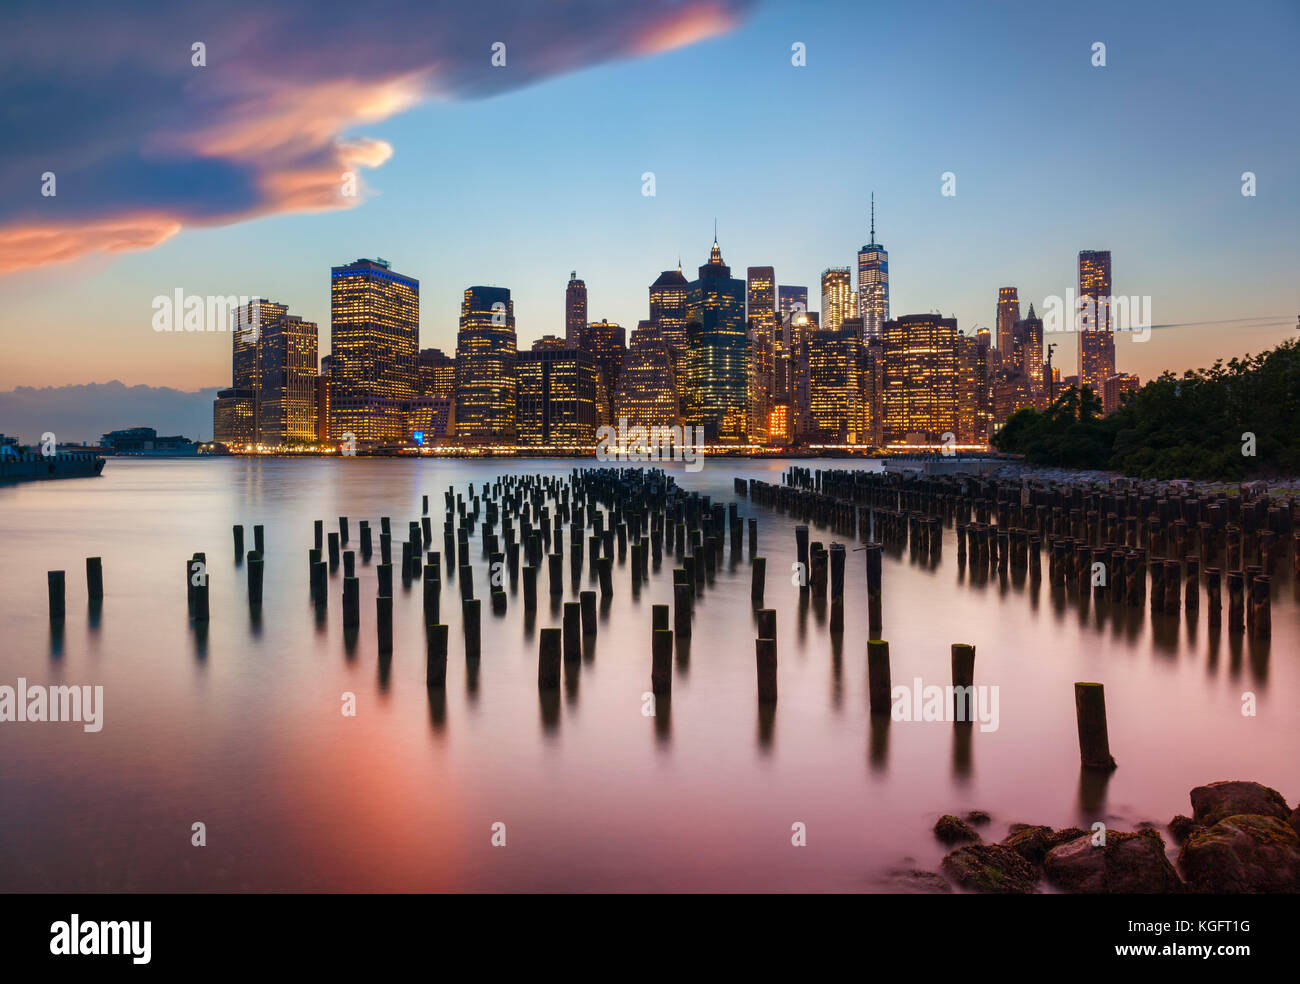 manhattan skyline New York skyline stormy sunset sky above the skyscrapers with Brooklyn old pier 1 wooden pilings - Stock Image